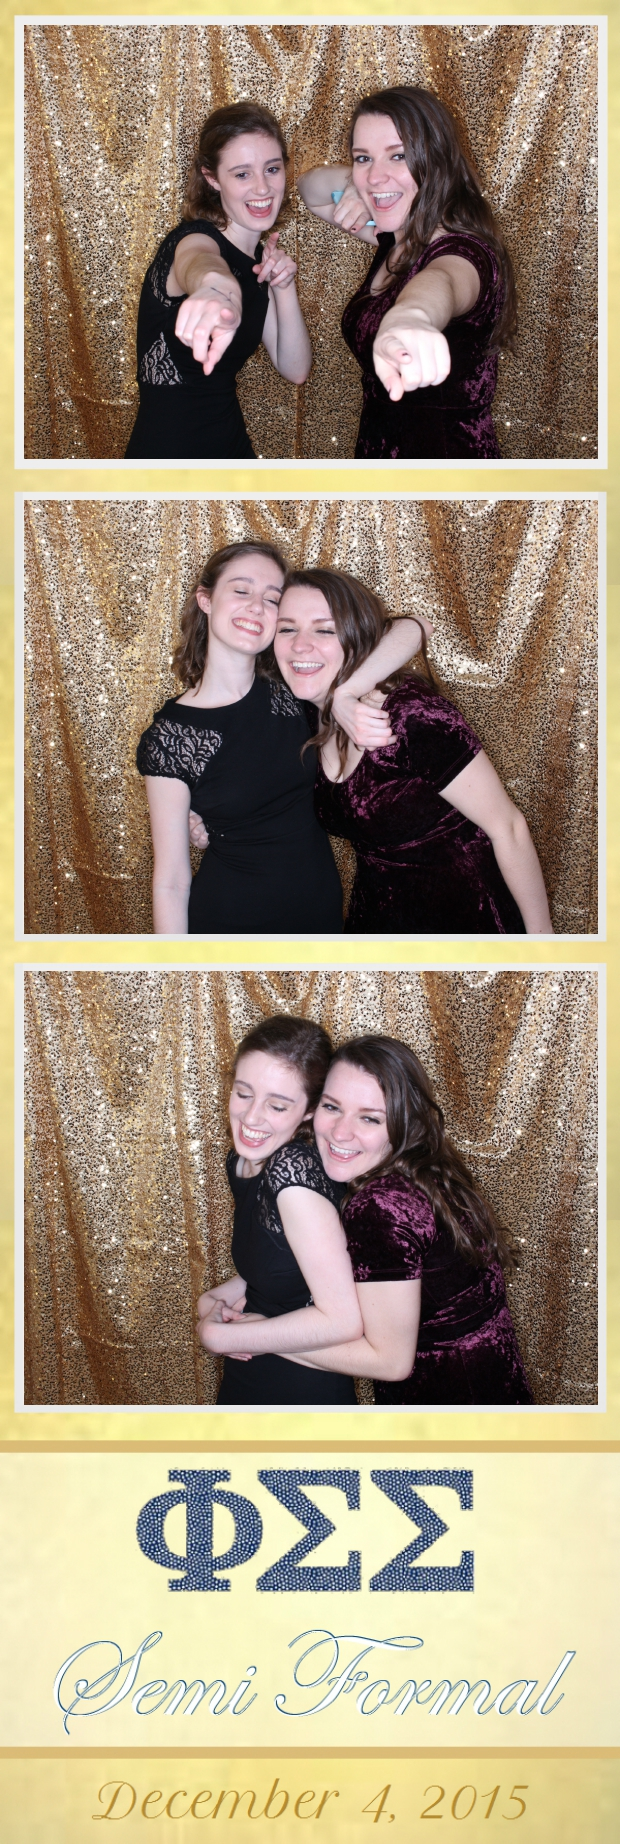 Guest House Events Photo Booth Phi Sigma Sigma Semi Formal (79).jpg